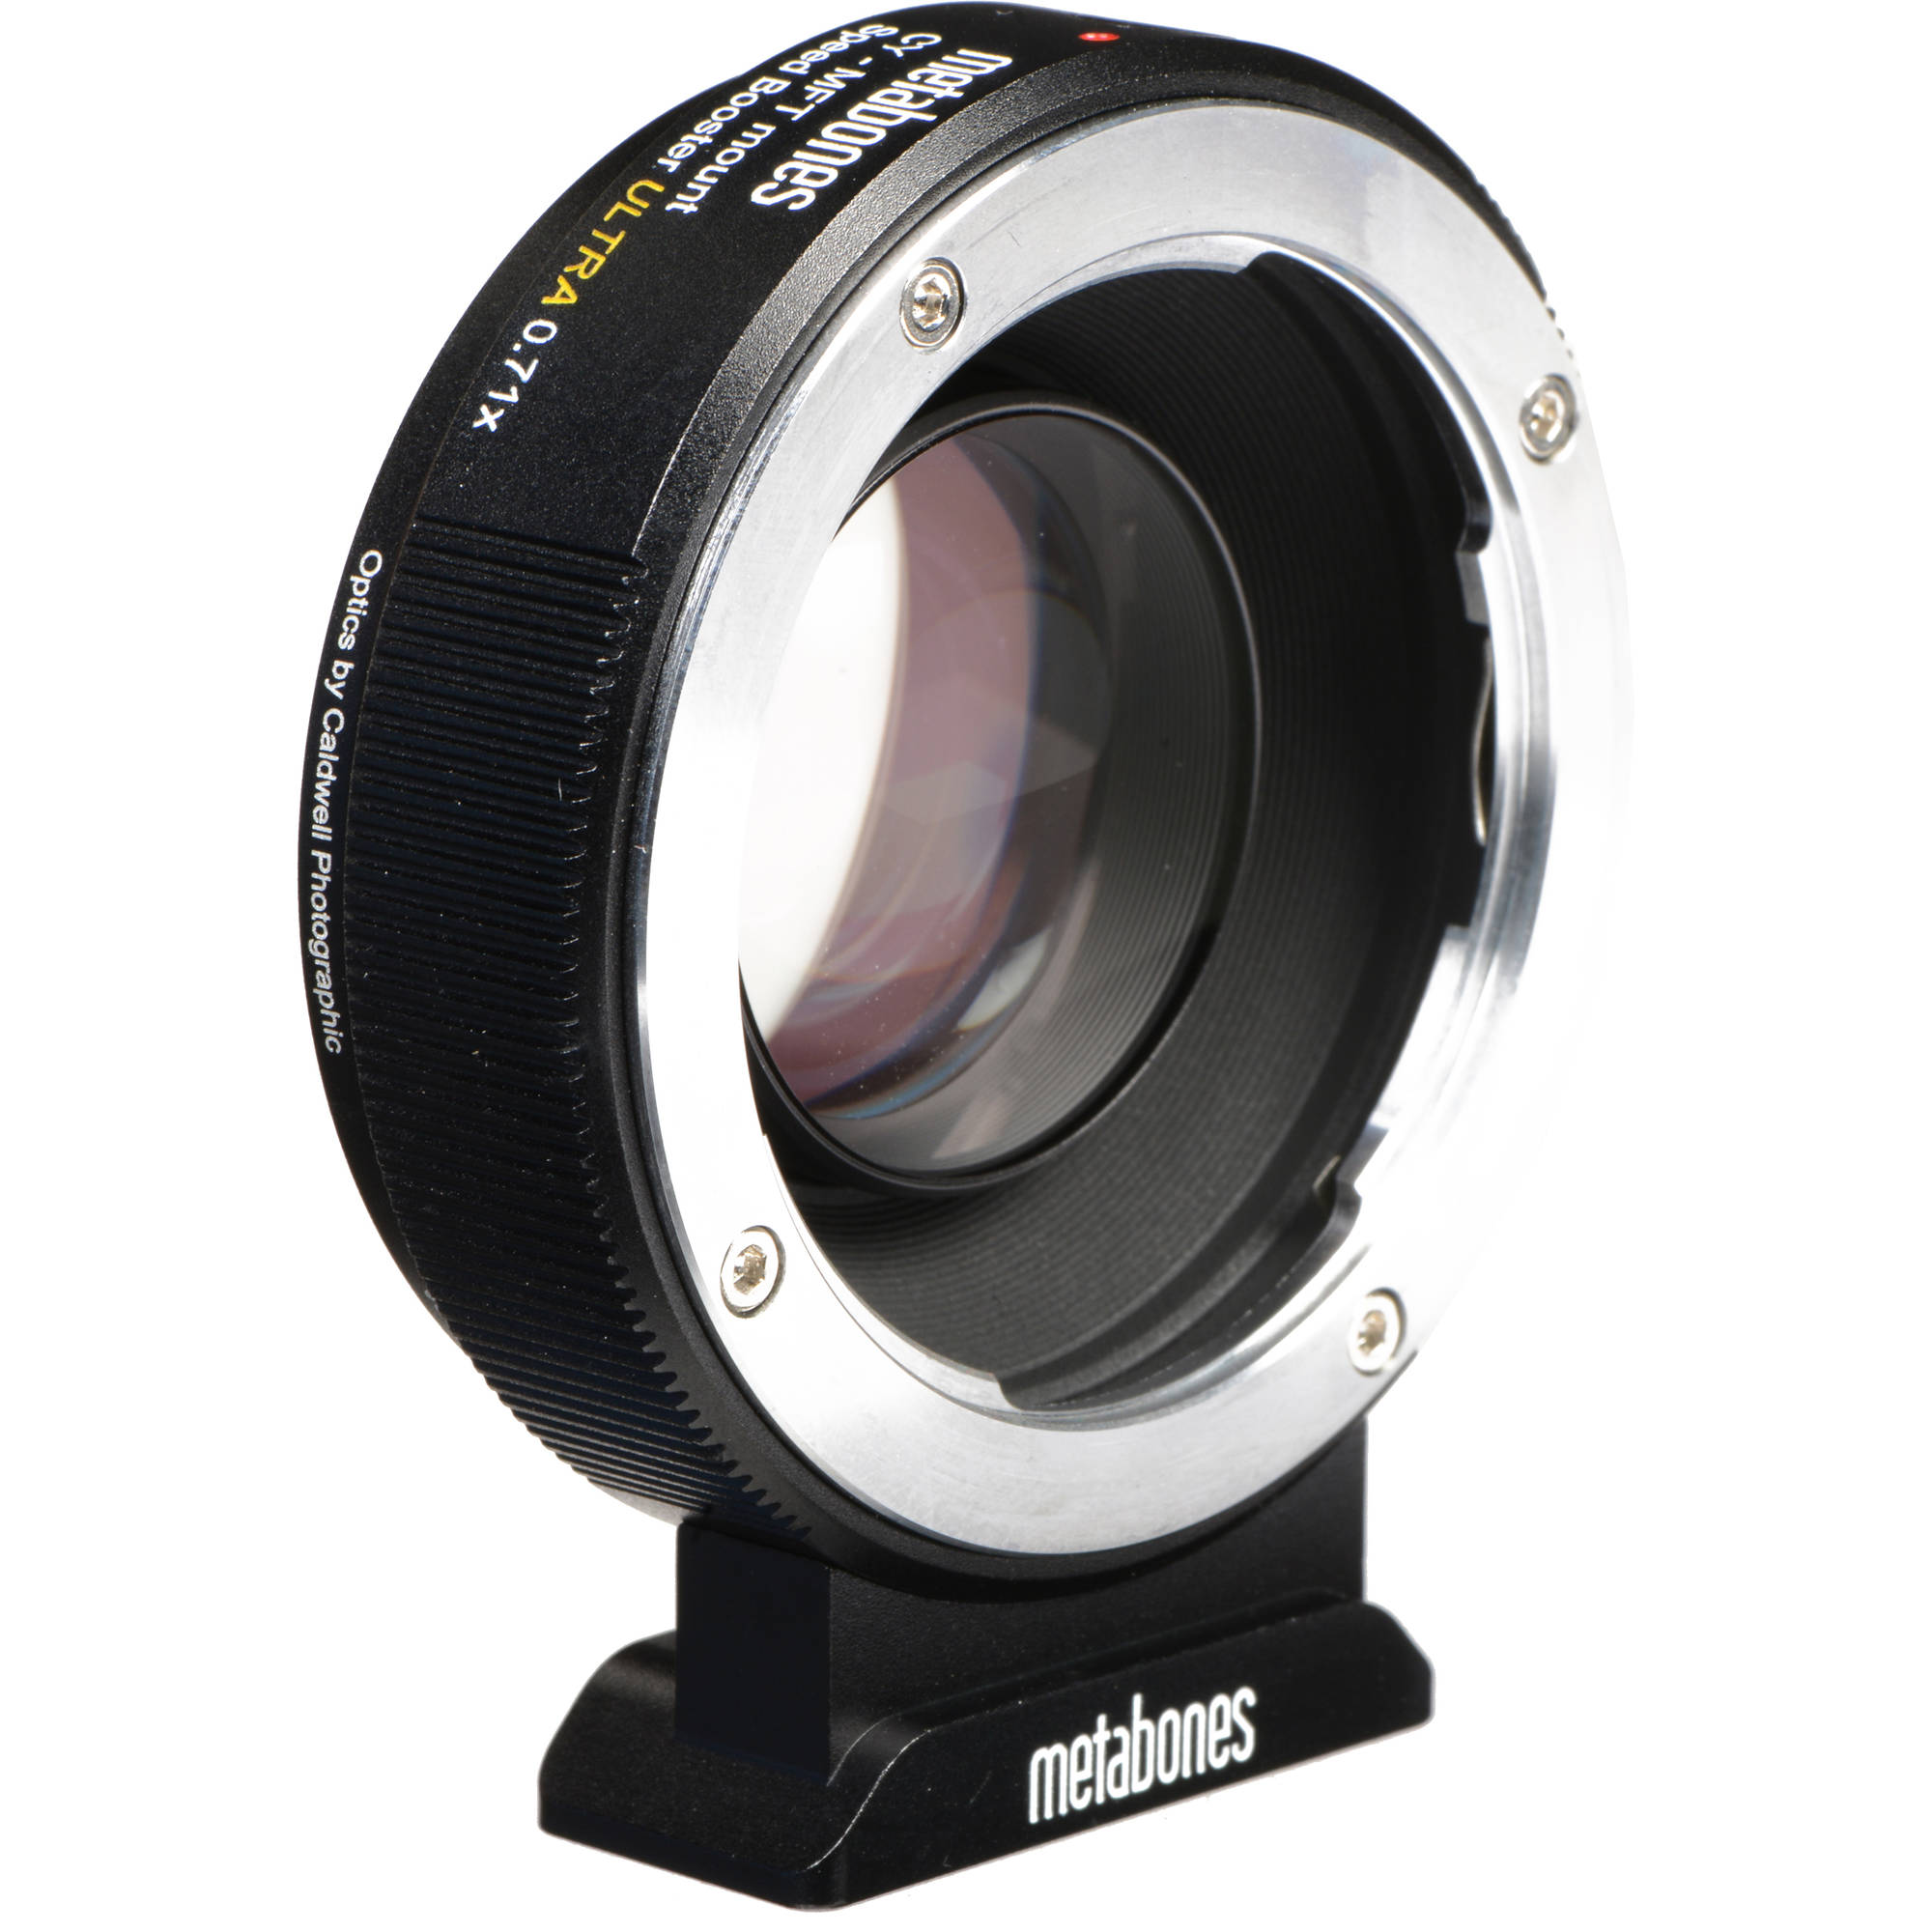 Metabones Speed Booster Ultra 0 71x Adapter for Contax/Yashica-Mount Lens  to Micro Four Thirds-Mount Camera